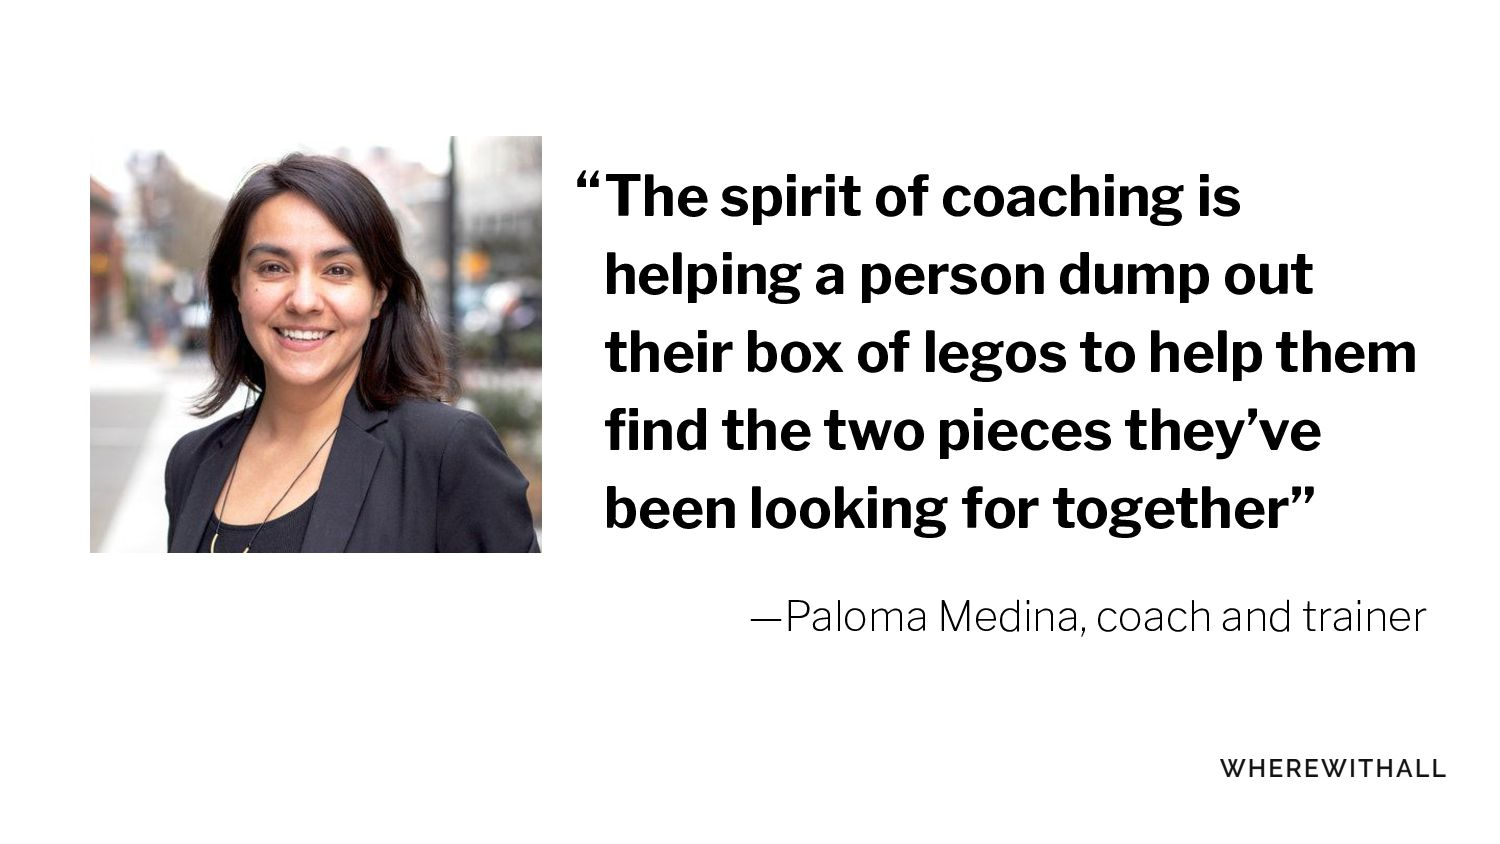 The spirit of coaching is helping a person dump...